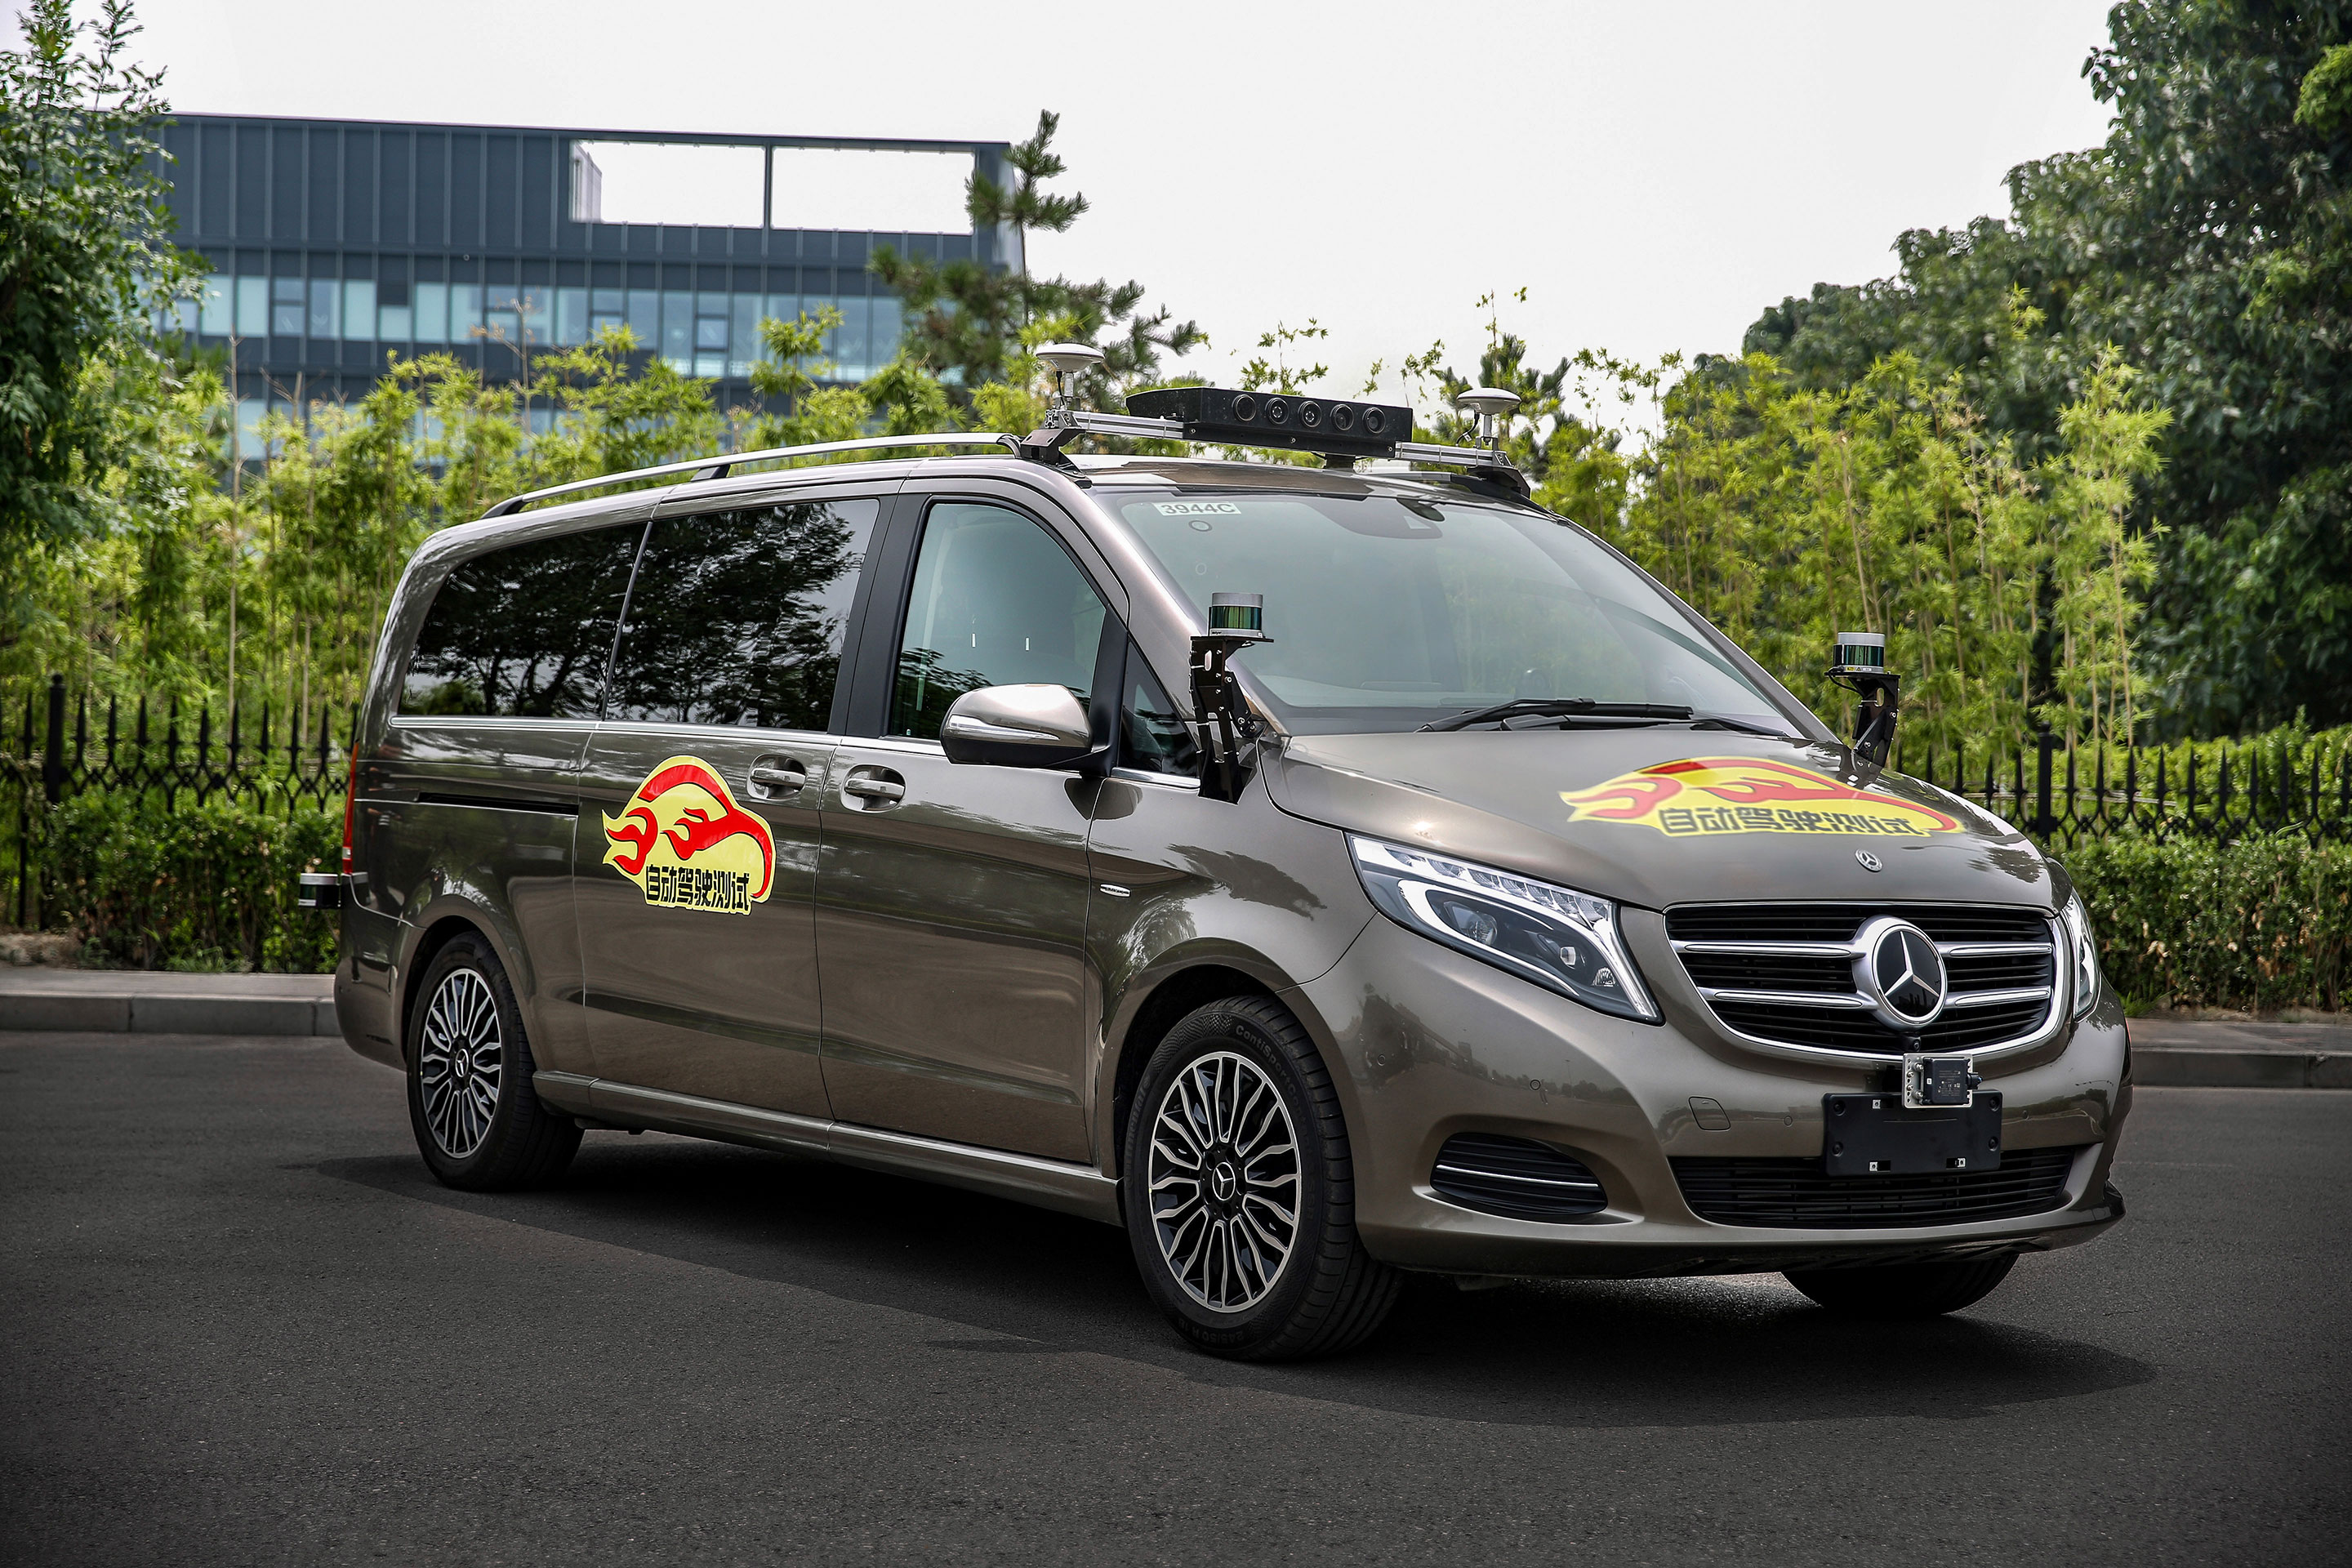 Daimler can now test self-driving cars on public roads in